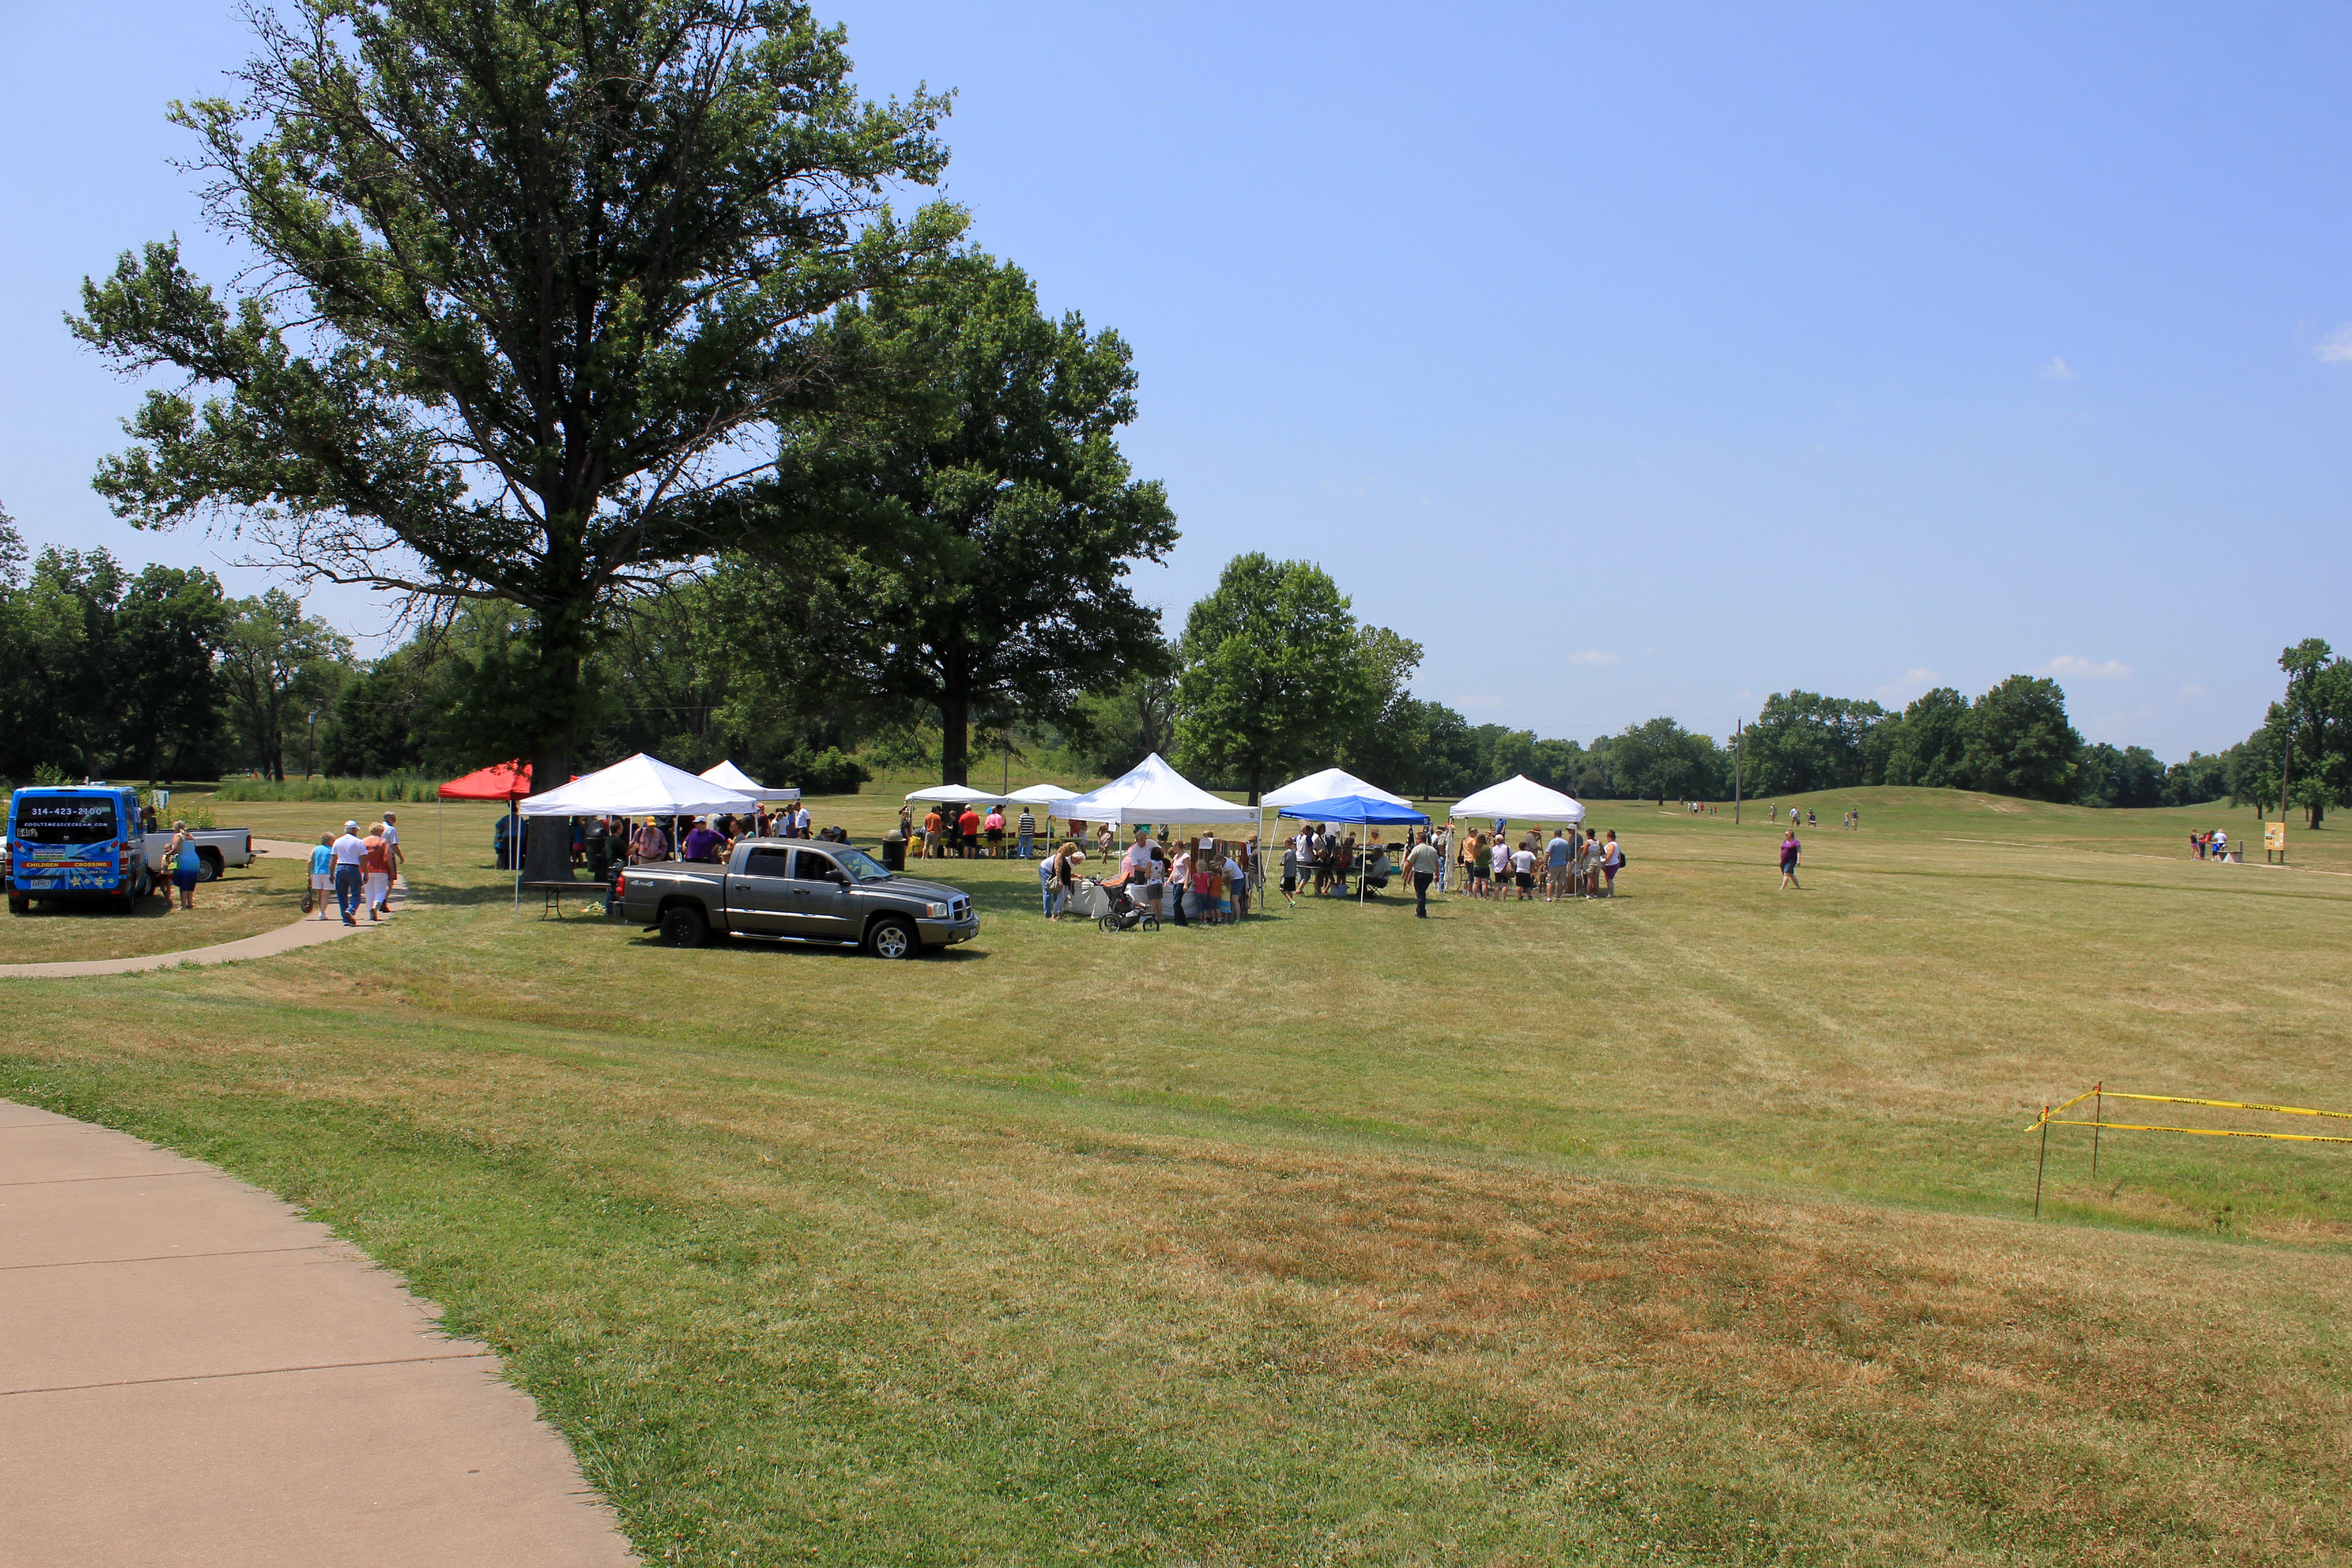 Tents on Archaeology Day at Cahokia Mounds, Illinois image